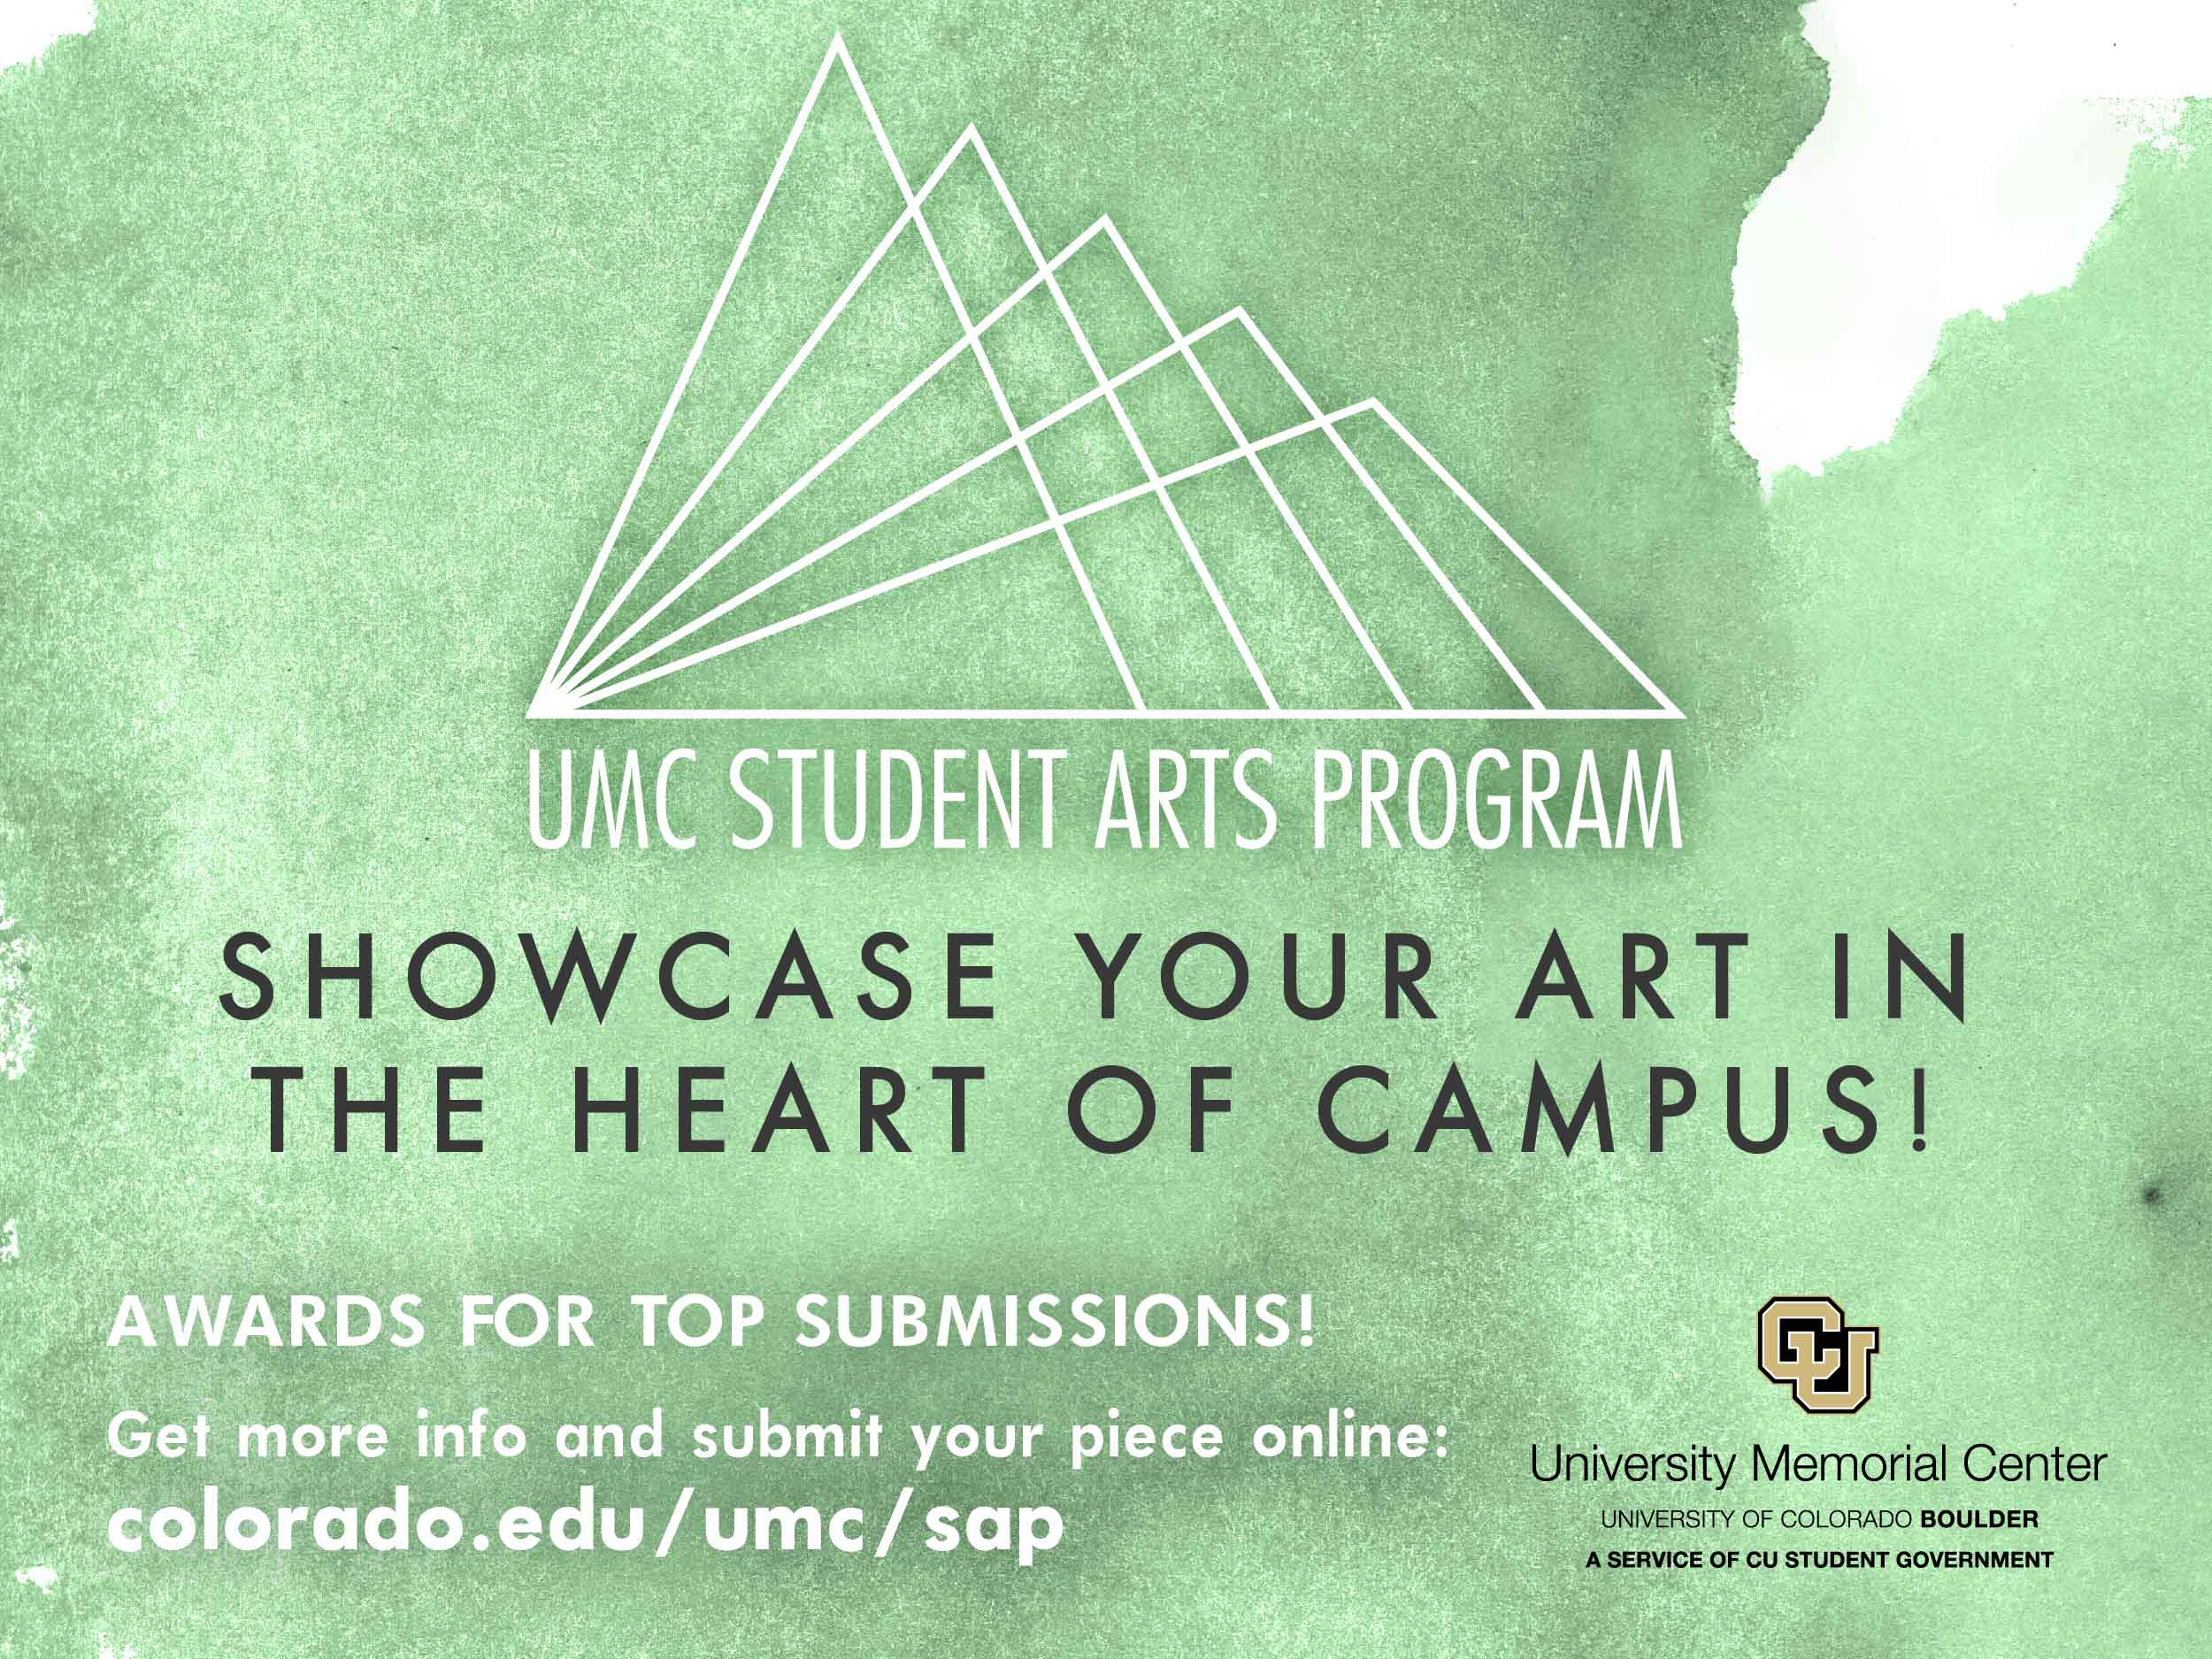 Showcase your art in the heart of campus!